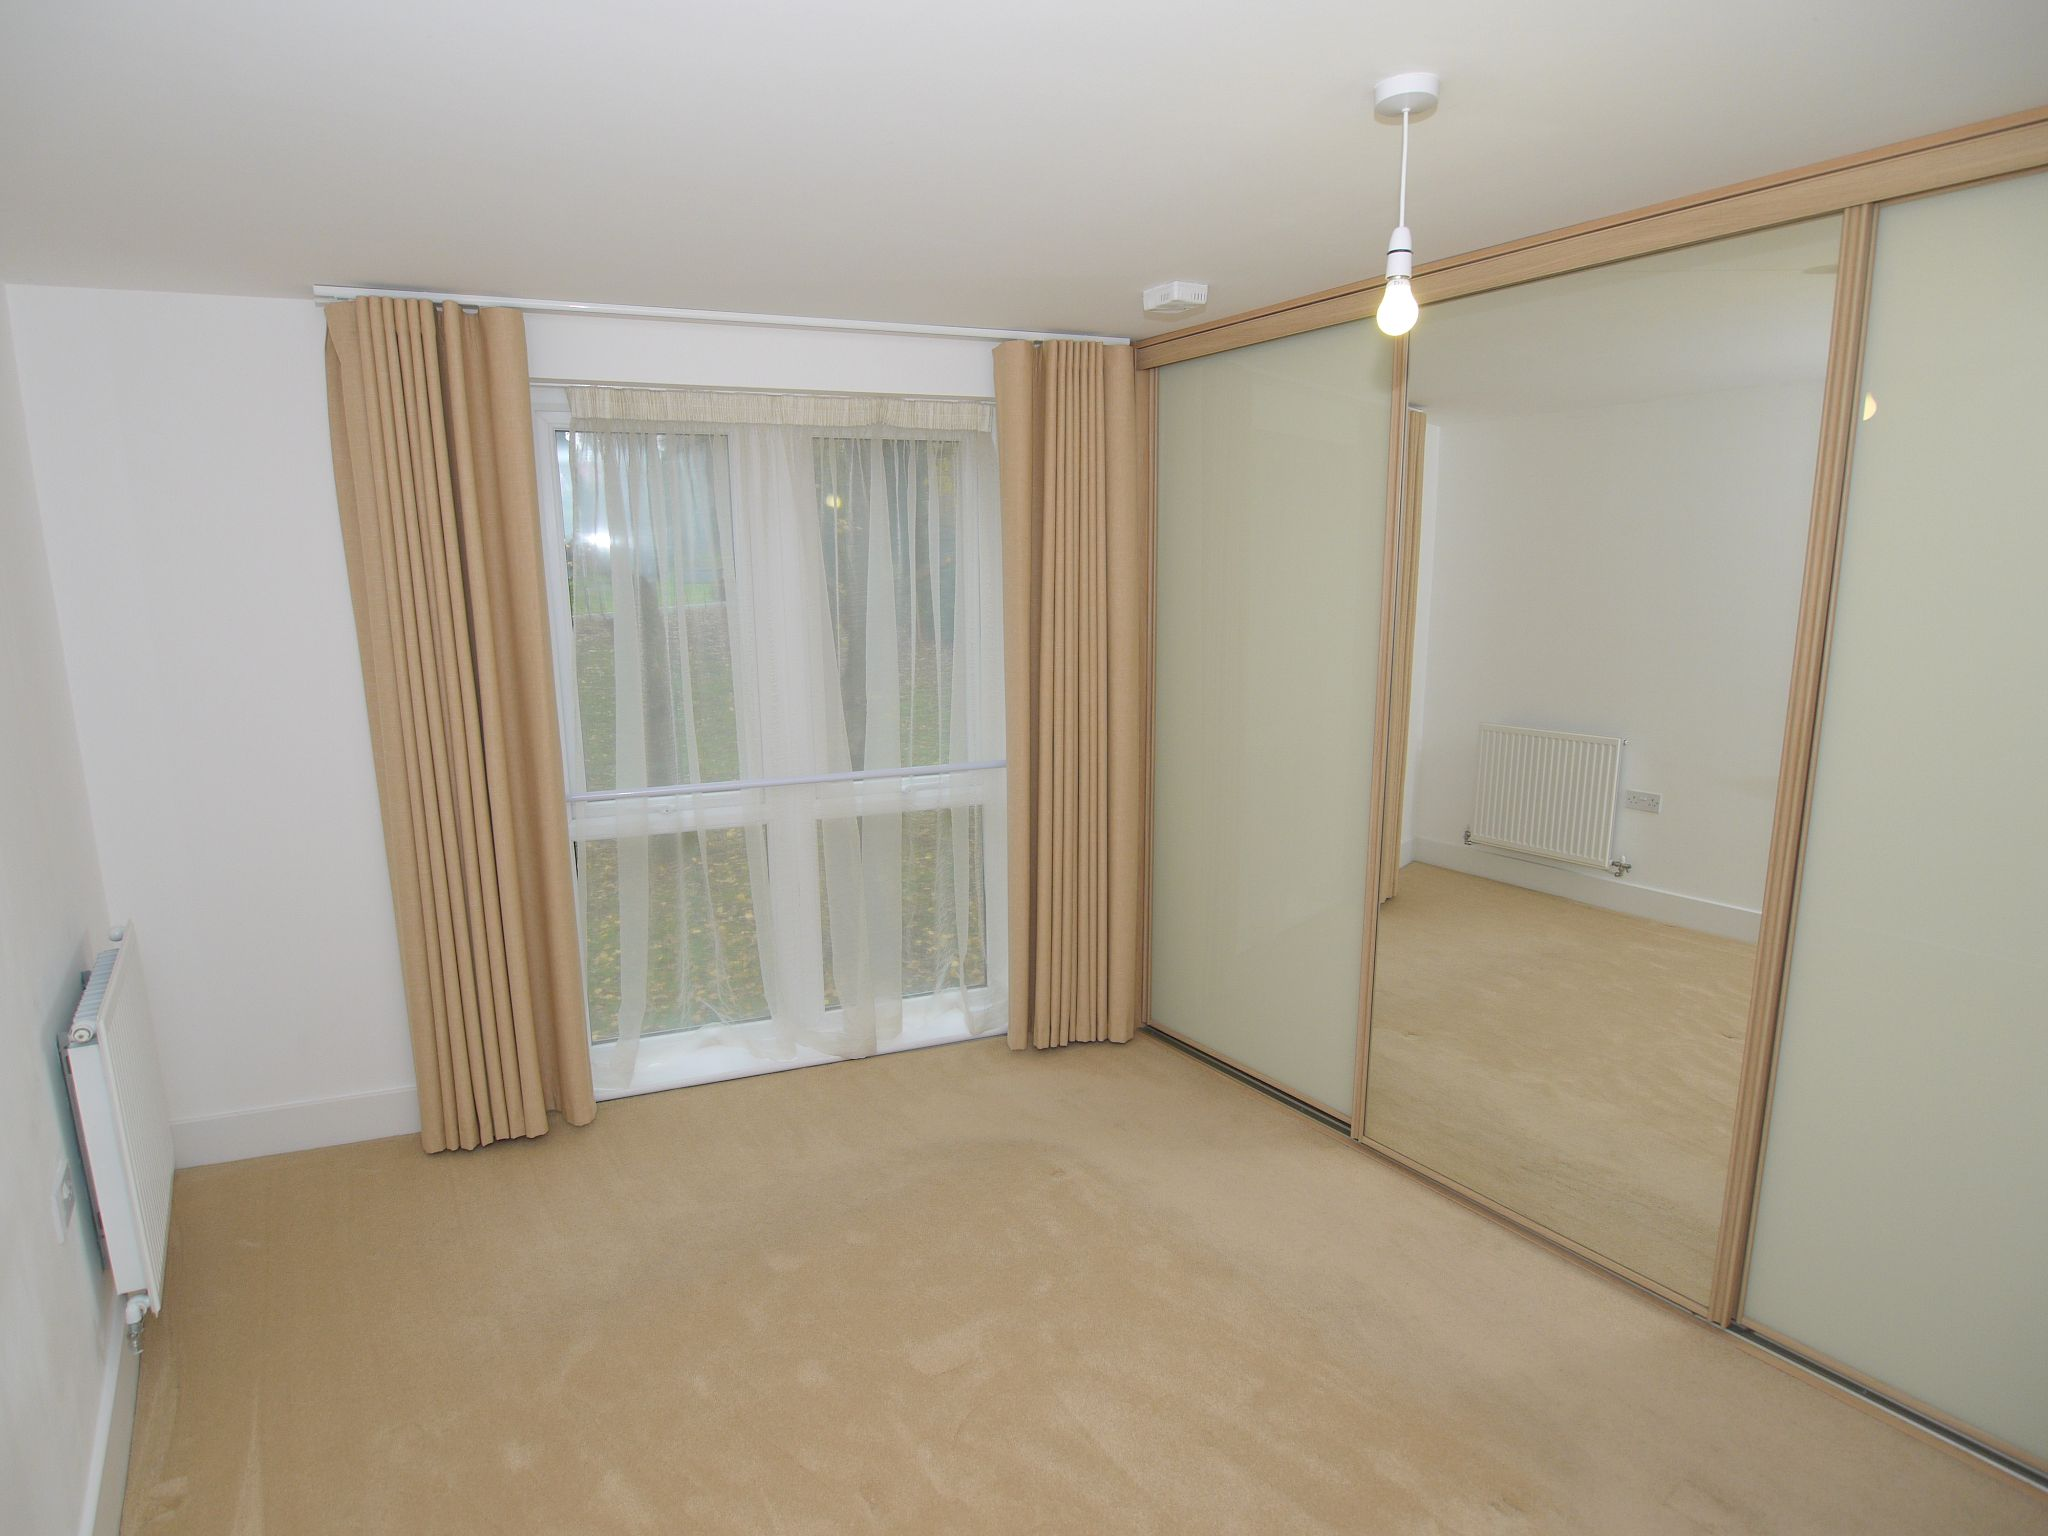 2 bedroom apartment For Sale in Sevenoaks - Photograph 6